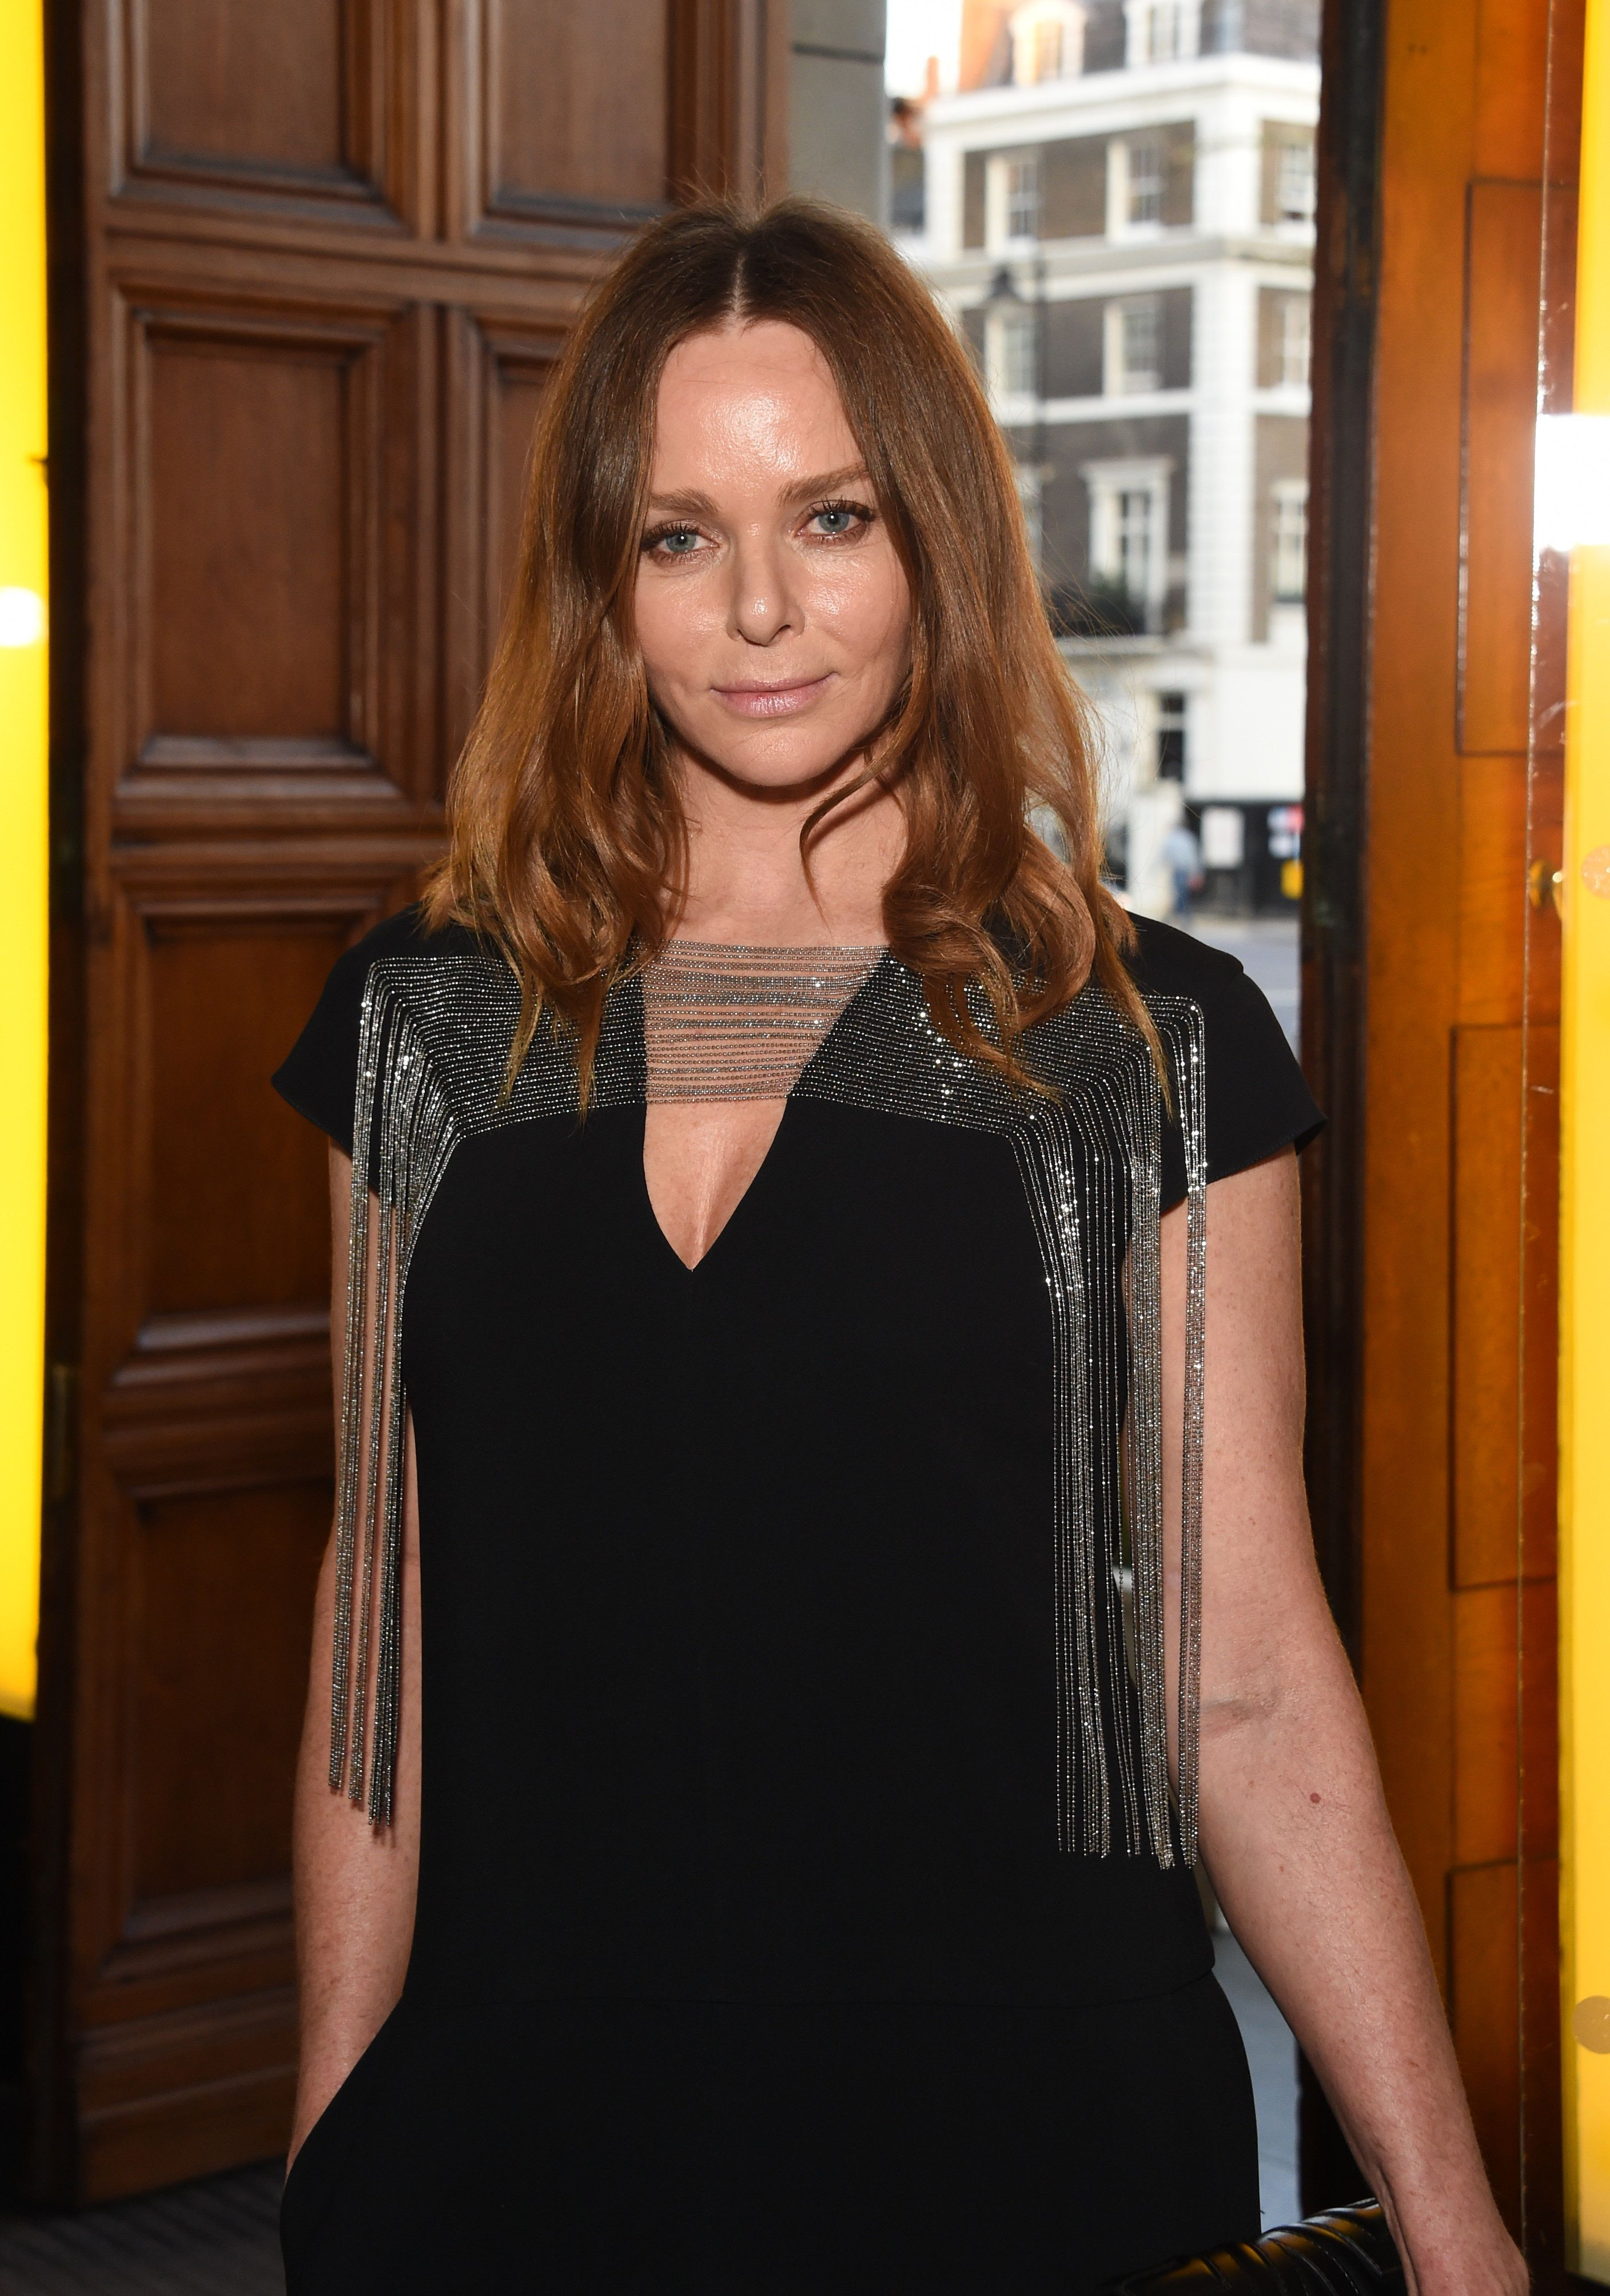 Stella McCartney Calls For UK-Wide Ban On Fur